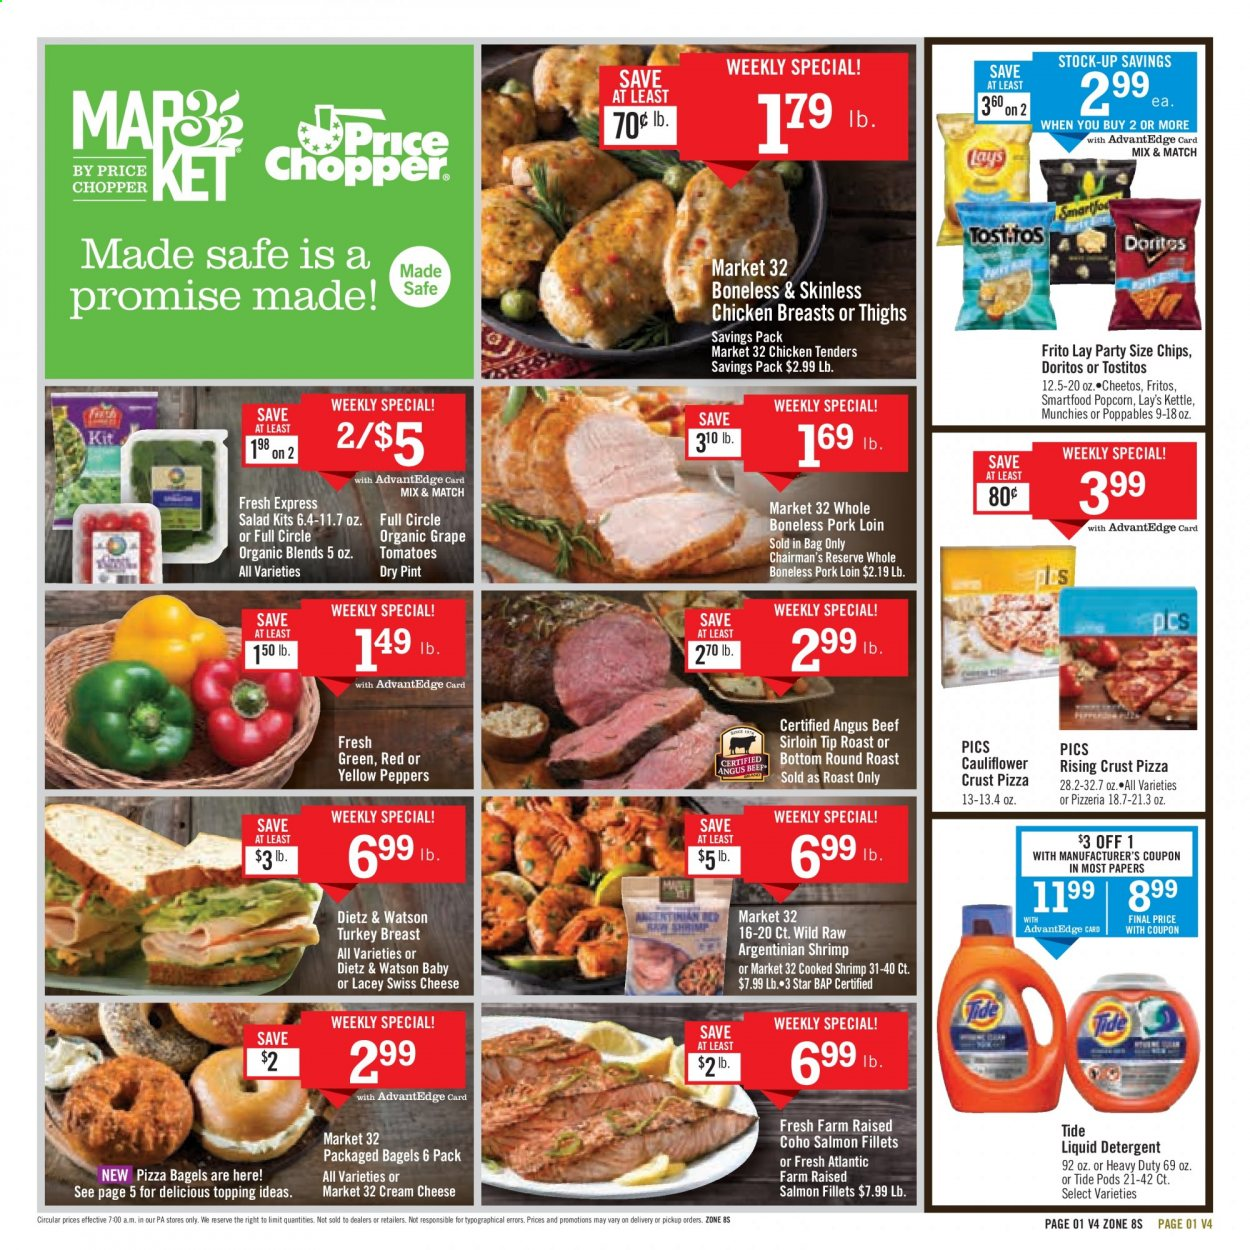 Price Chopper Flyer - 10.25.2020 - 10.31.2020 - Sales products - bagels, beef meat, beef sirloin, cauliflower, cream cheese, detergent, Doritos, Fritos, grapes, salmon, swiss cheese, Tide, tomatoes, turkey, turkey breast, pizza, pork loin, pork meat, cheetos, chicken, chicken breast, chicken tenders, chips, cheese, Lay's, salad, topping, liquid detergent, peppers, shrimps, kettle, heavy duty. Page 1.